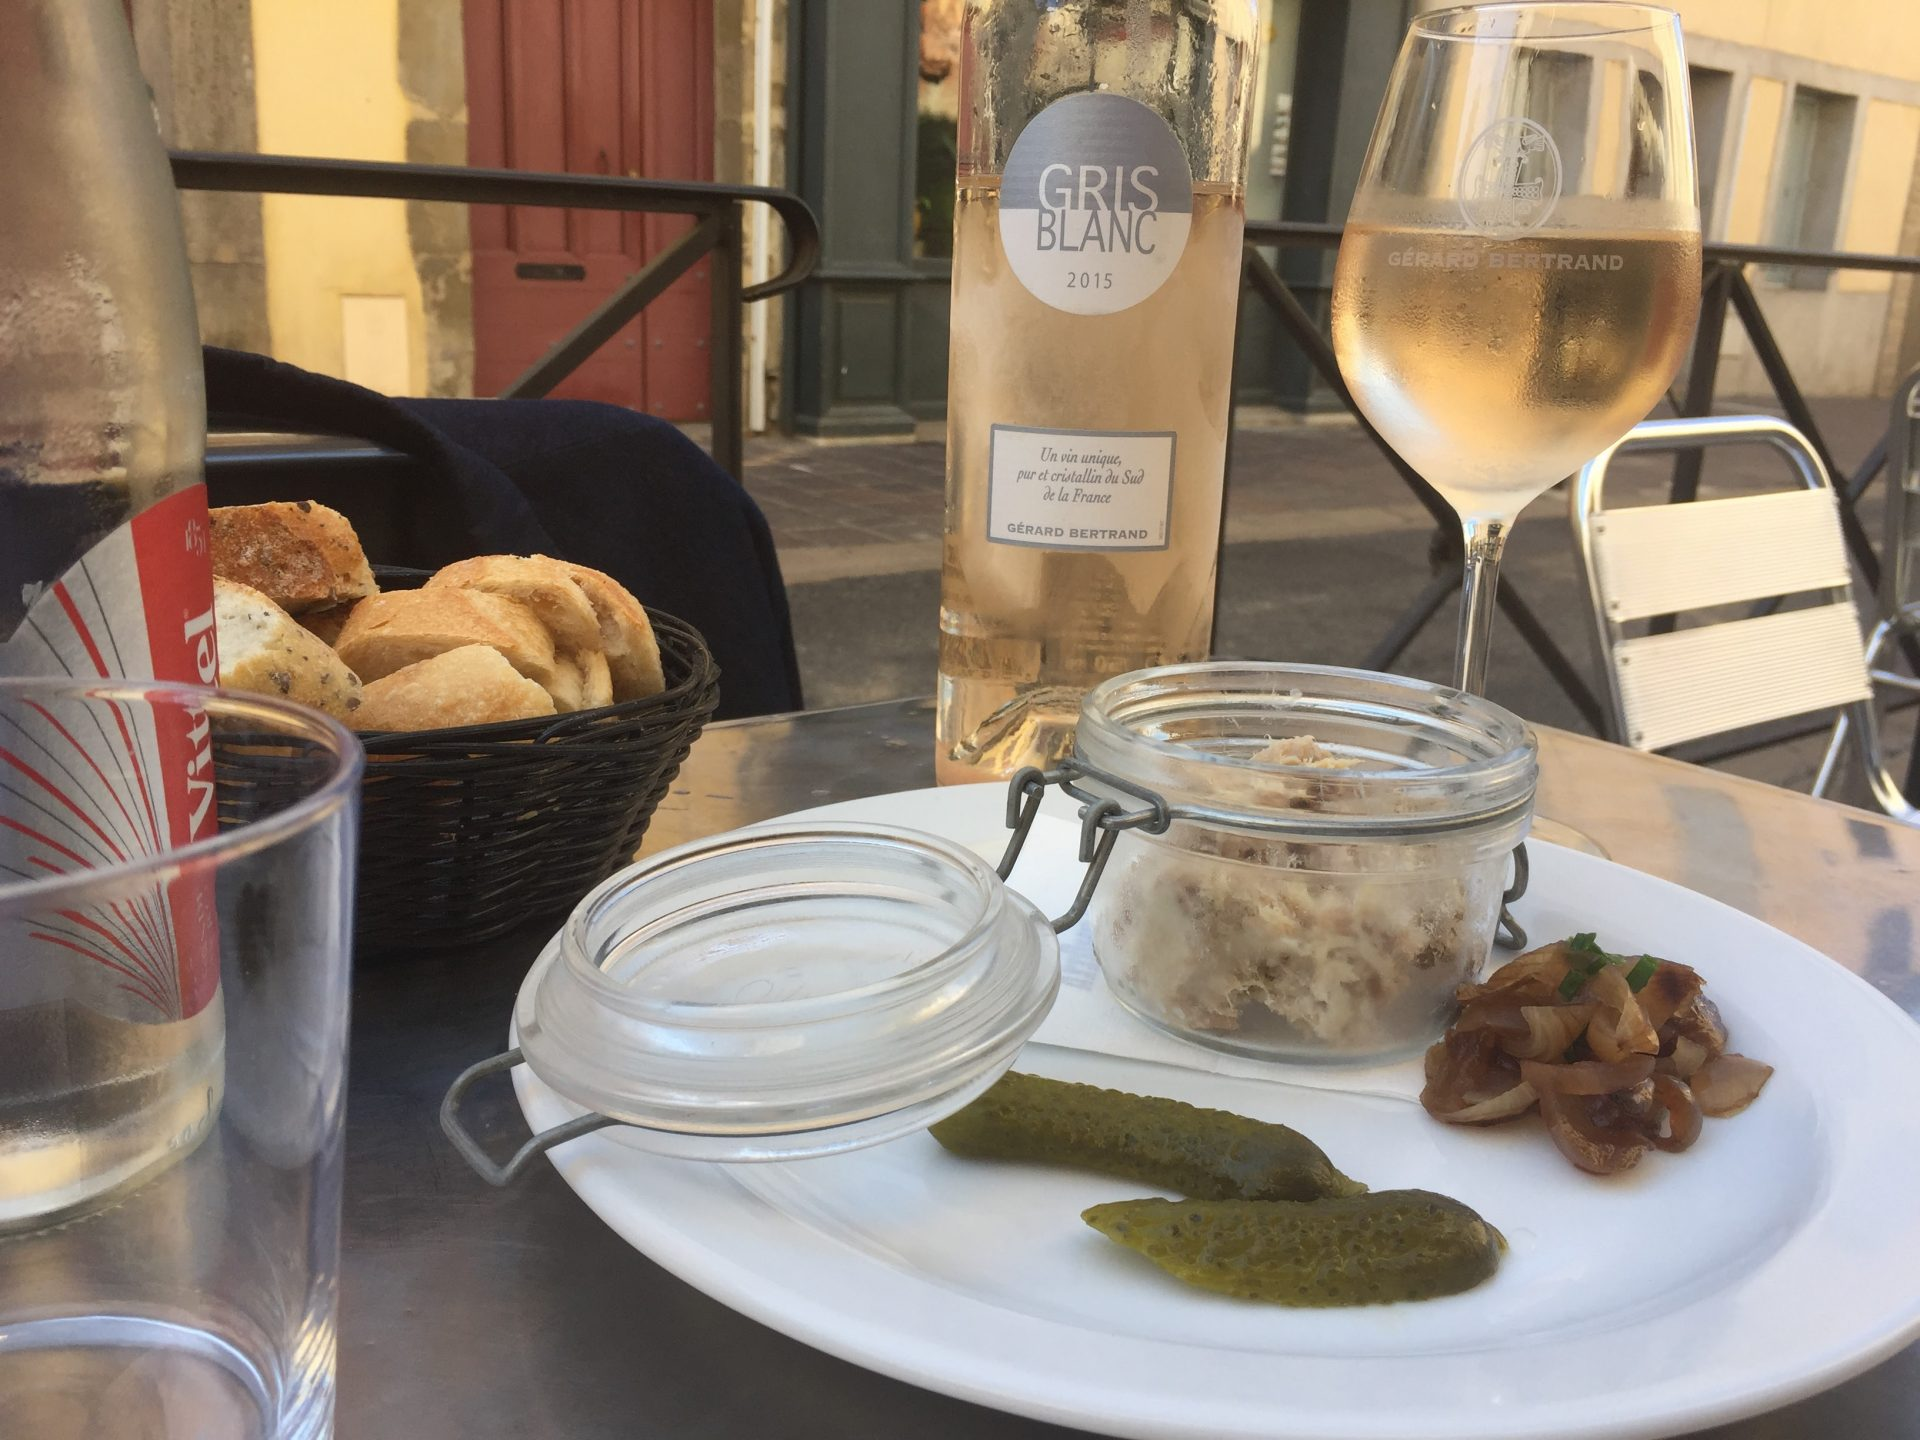 Gerard Bertrand's Gris Blanc Rosé was undoubtedly one of the crowd favourites, pictured here with rabbit rillettes.